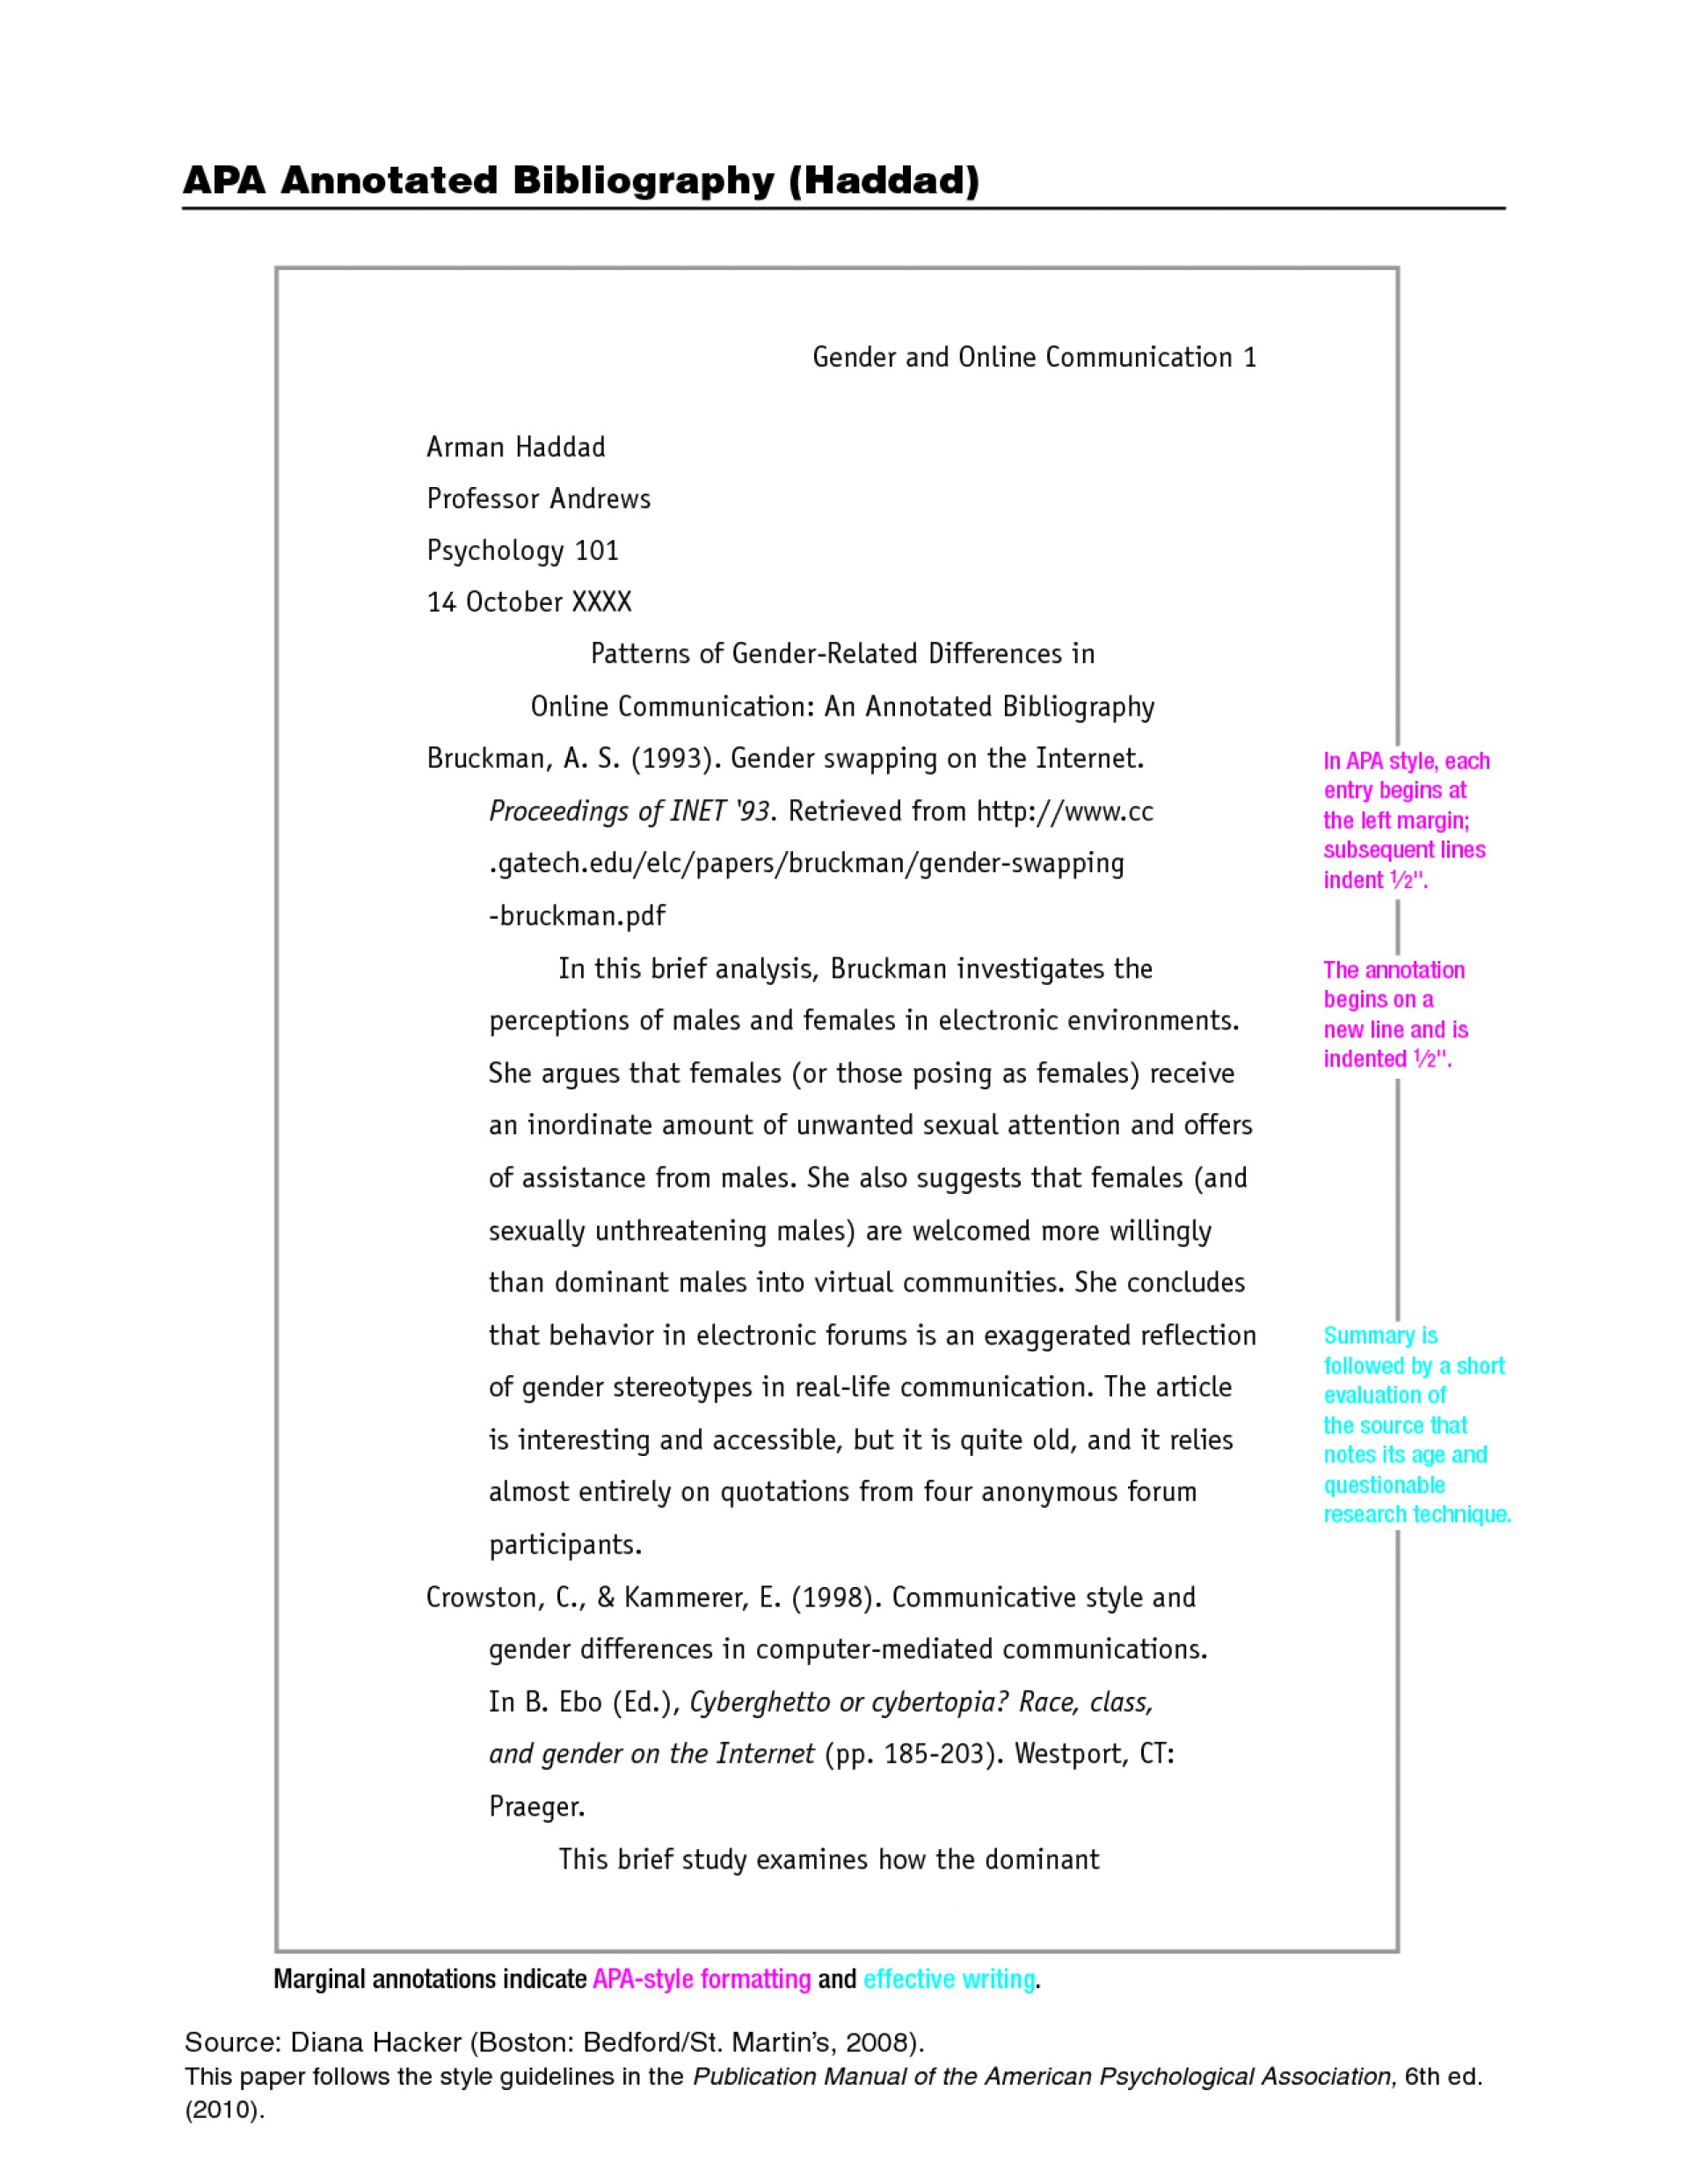 011 Apa Paper Template Si6pk8fz Essay Style Amazing Answer Harvard Format Guide 1920